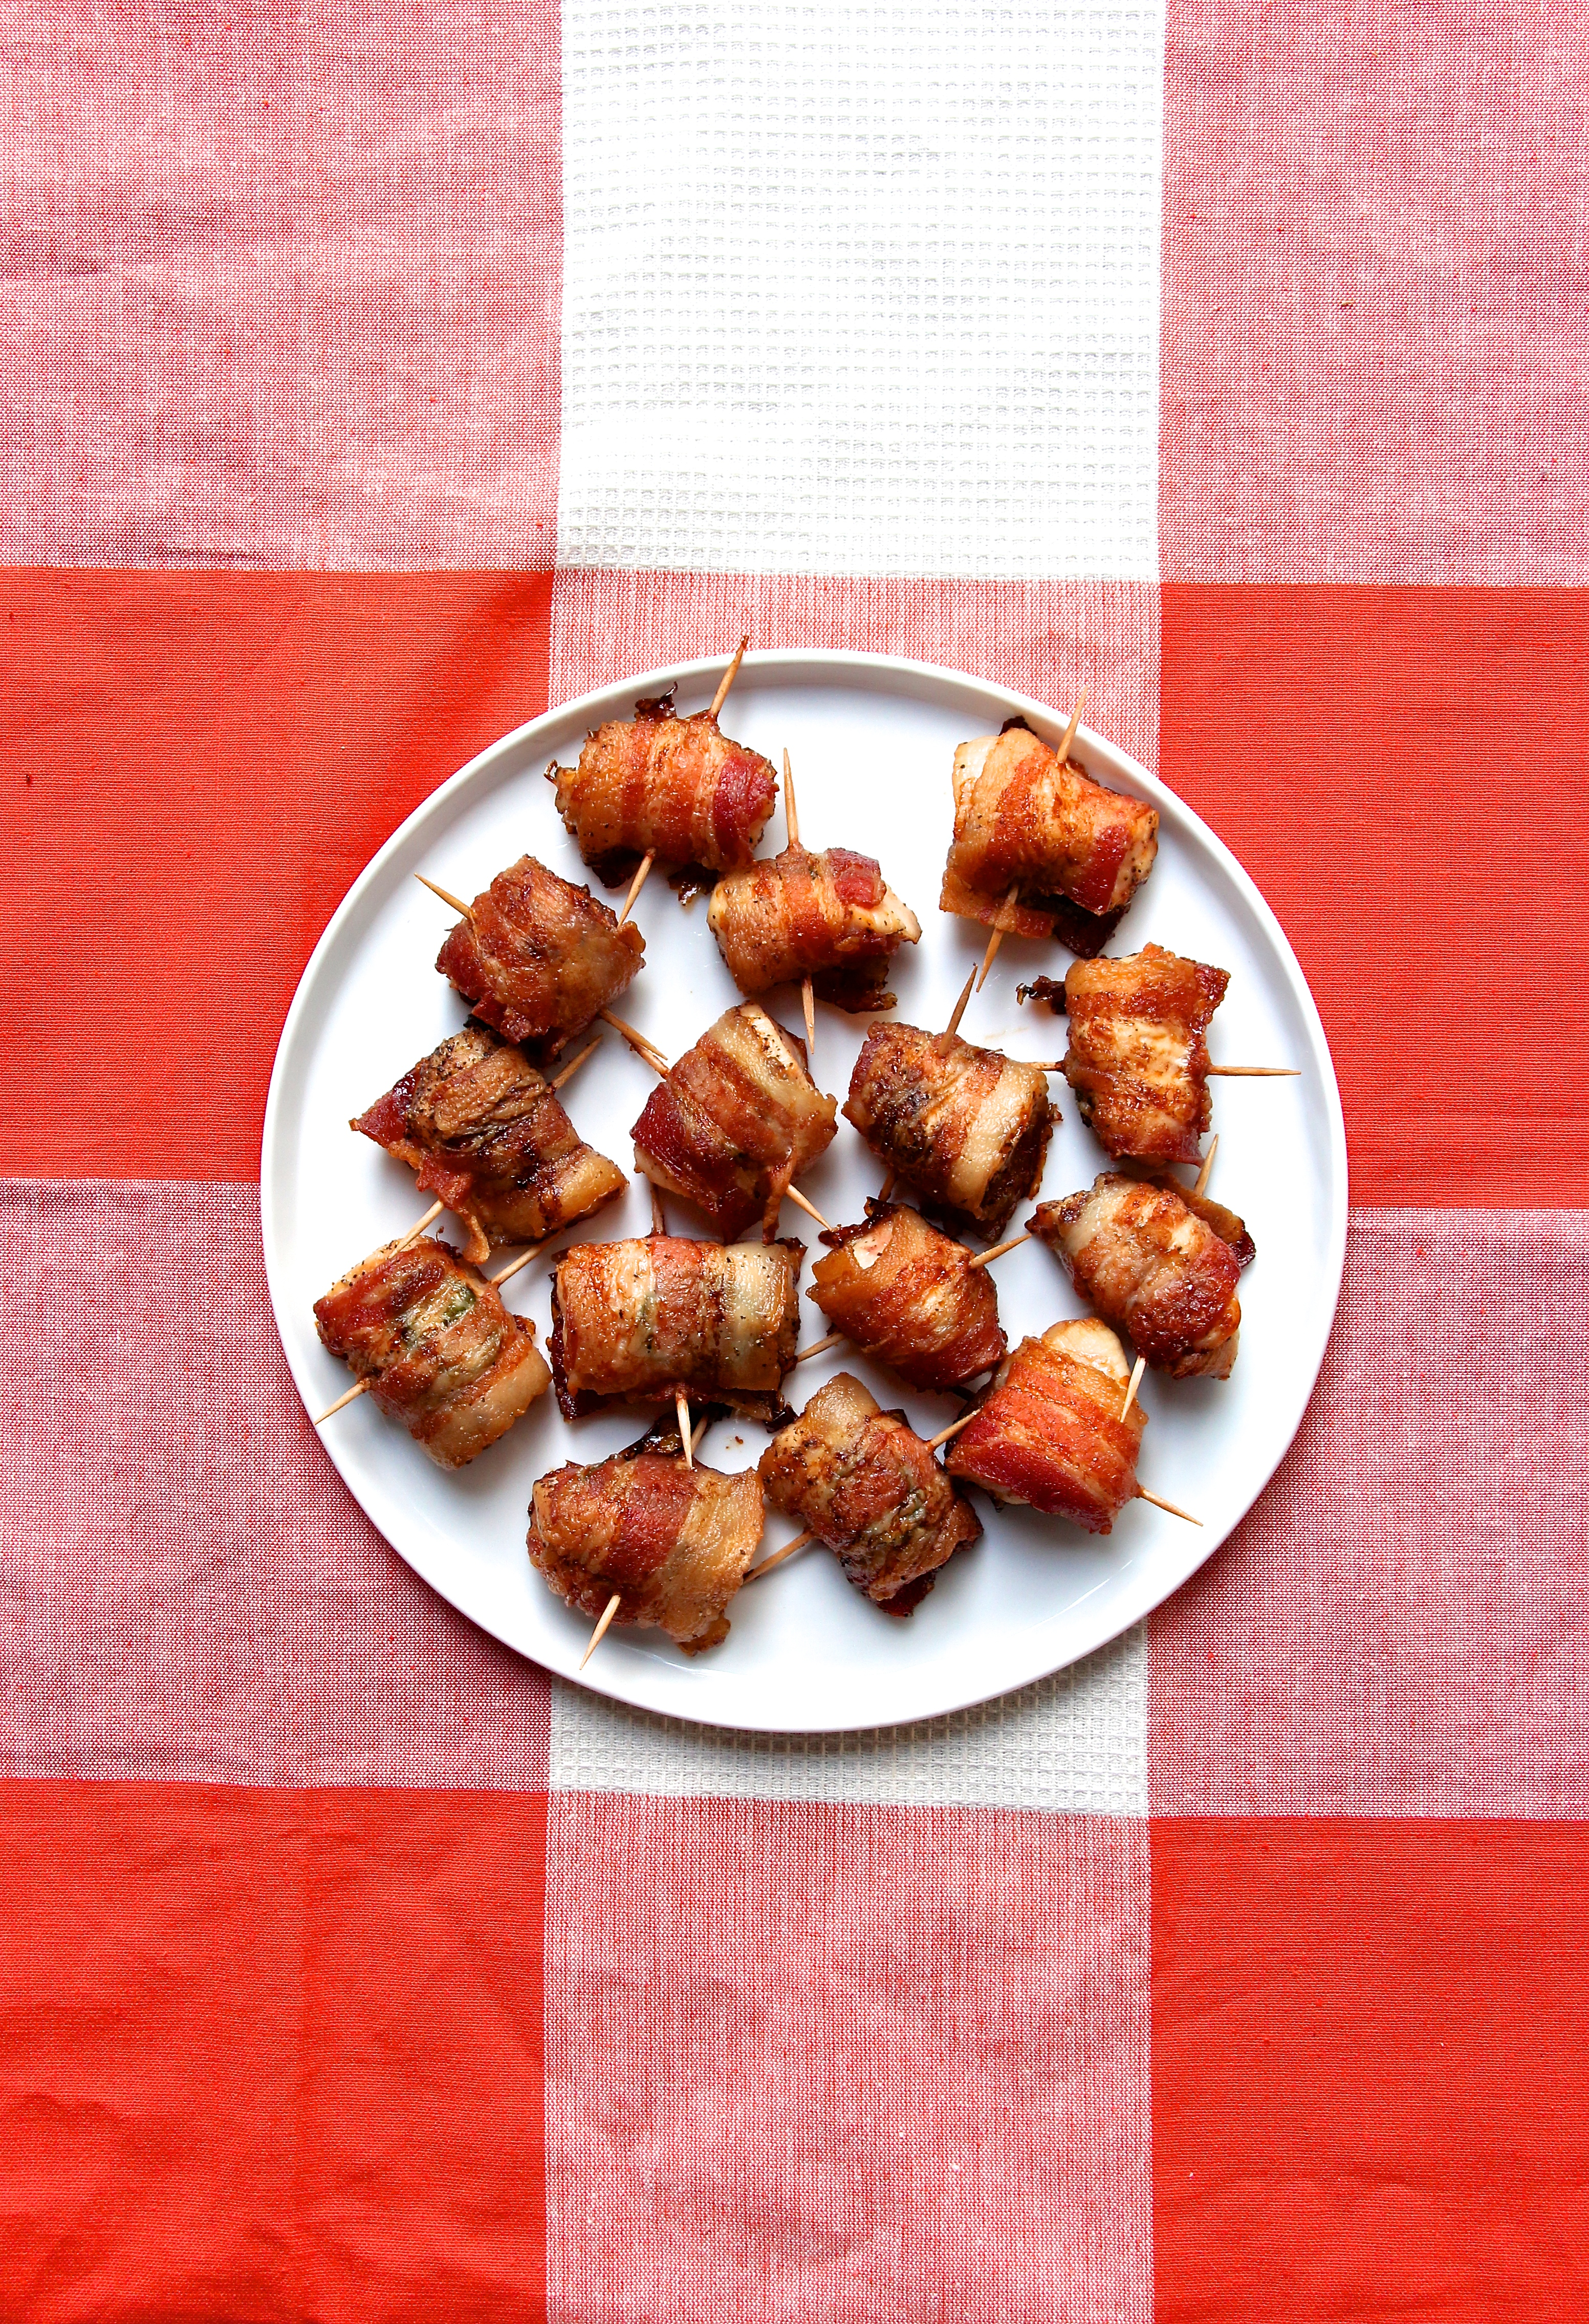 """Bacon Wrapped Anything Is Always A Great Crowd Pleasing Appetizer Growing  Up, We Made What We Like To Call €�chicken Lizzies"""", Which Is What I've  Posted"""